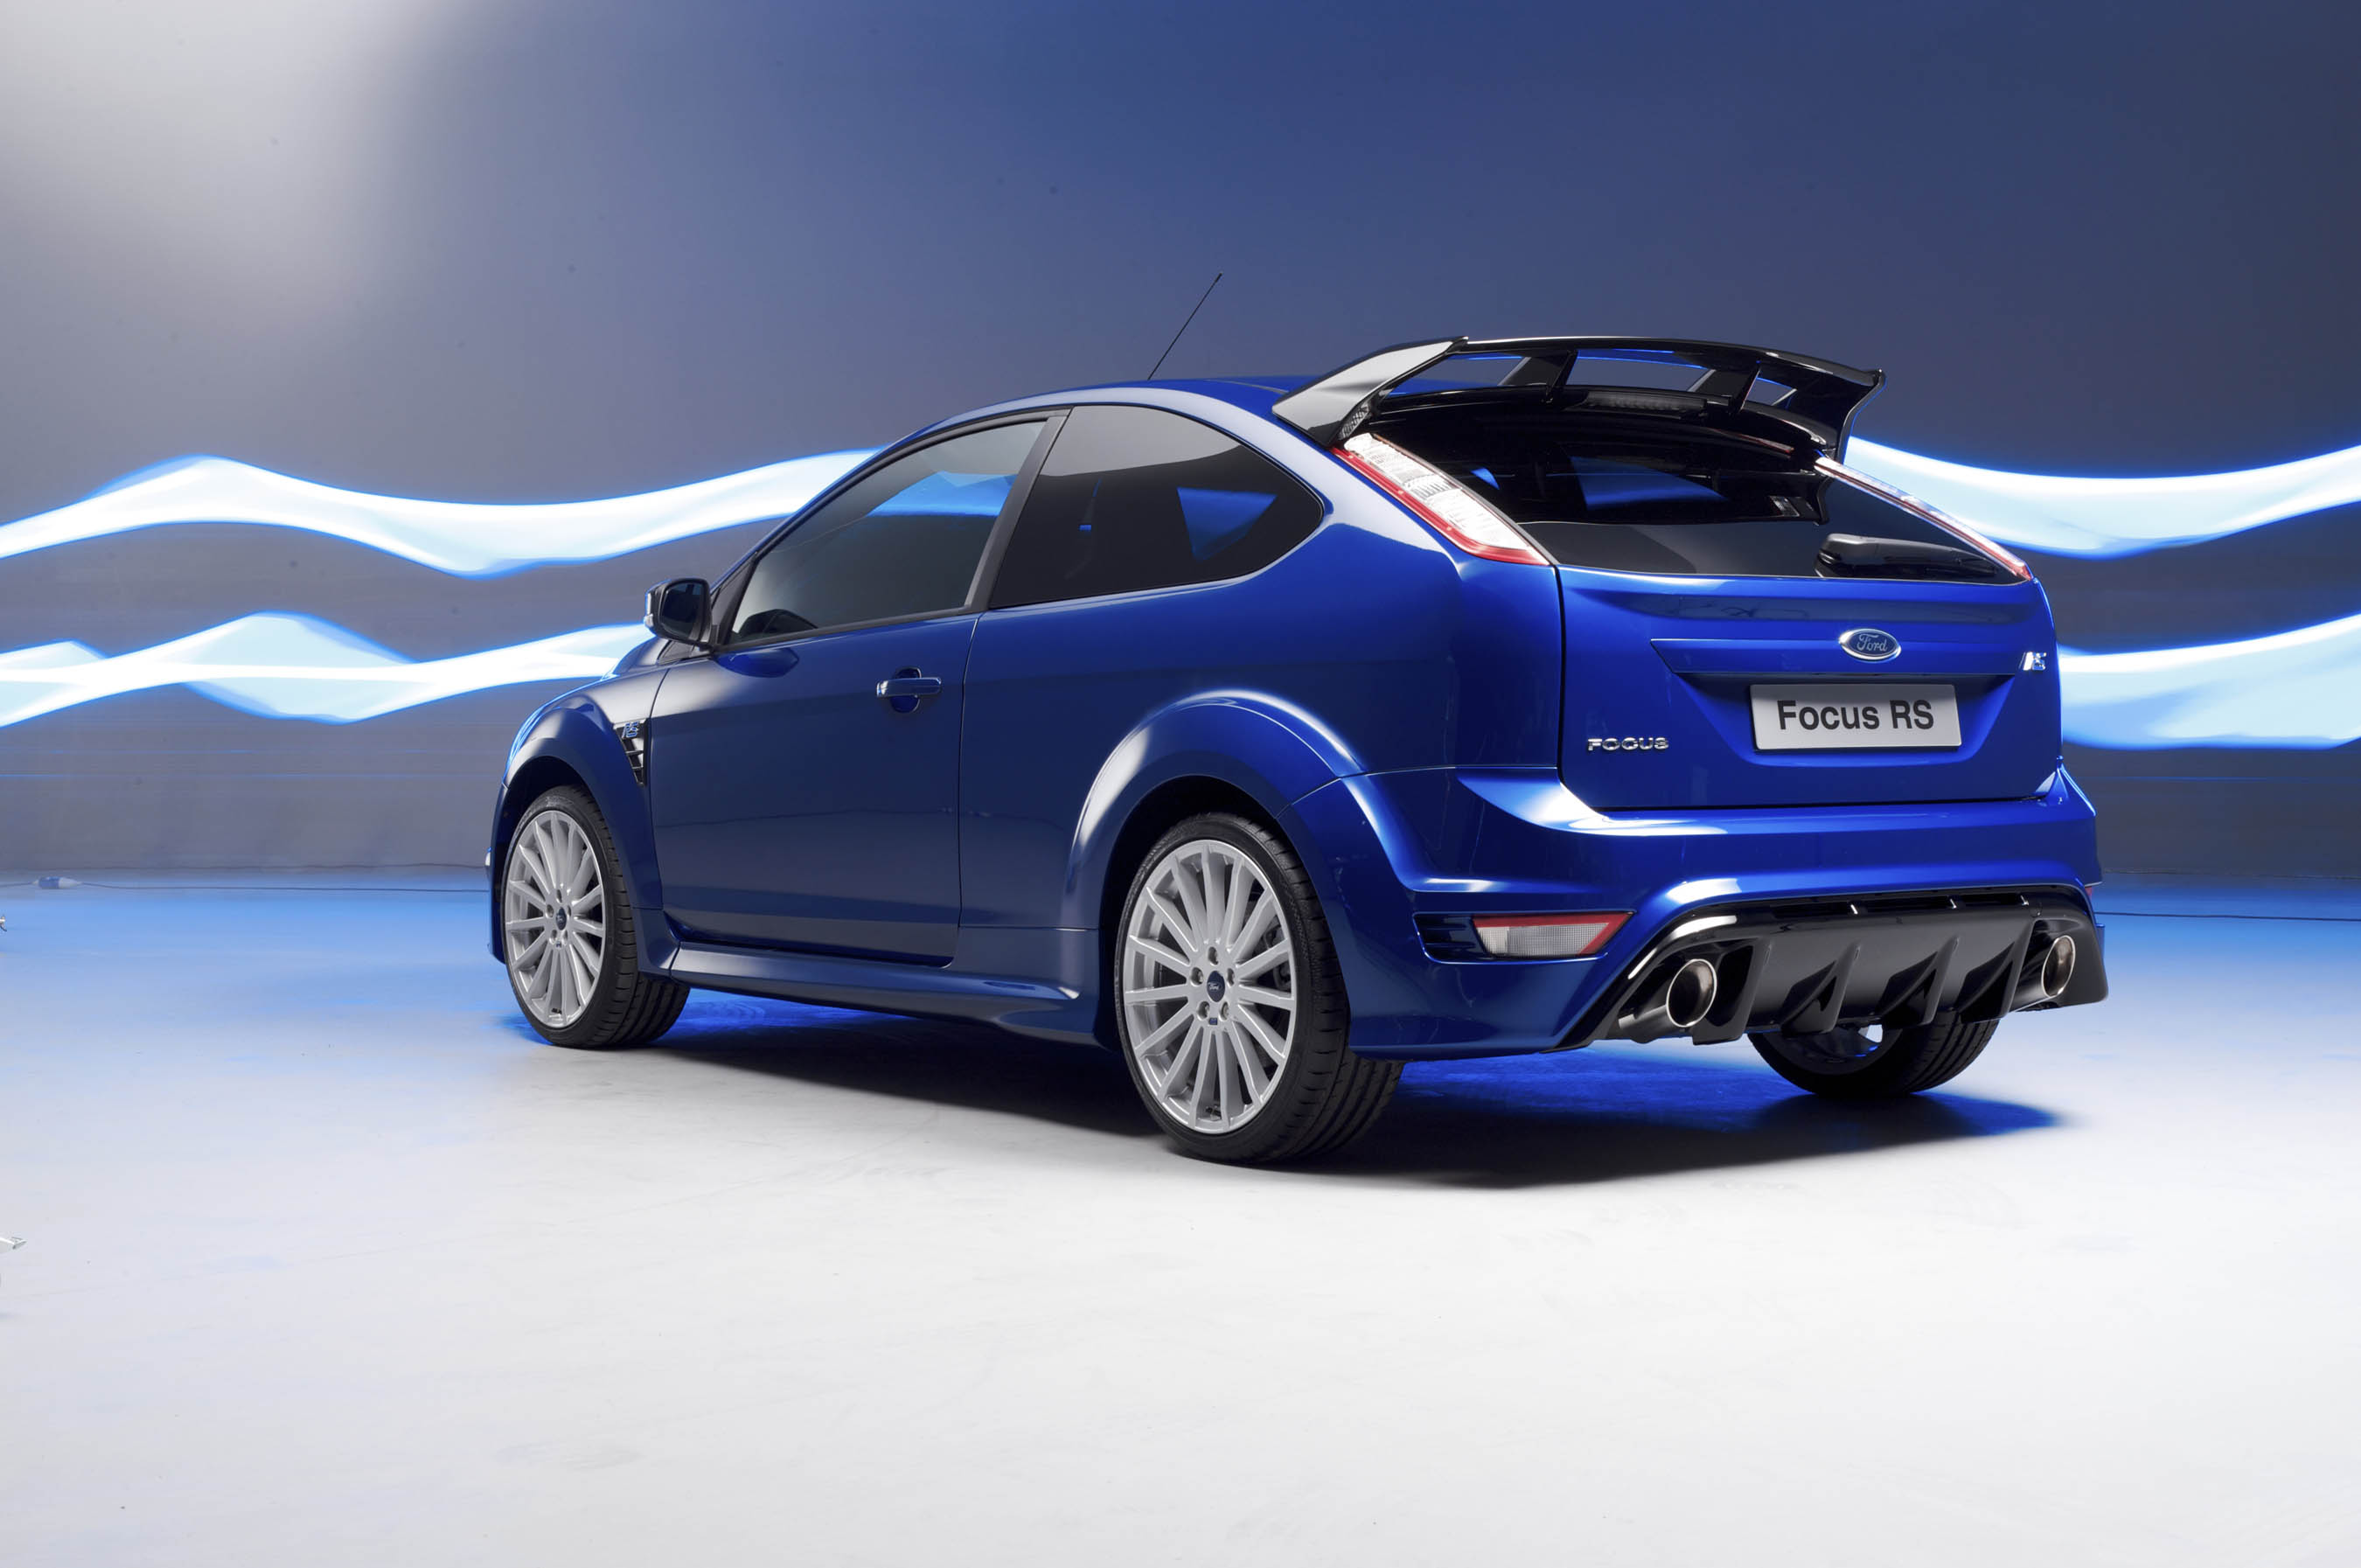 nouvelle ford focus rs toutes les photos hd 37 et 2 vid os. Black Bedroom Furniture Sets. Home Design Ideas